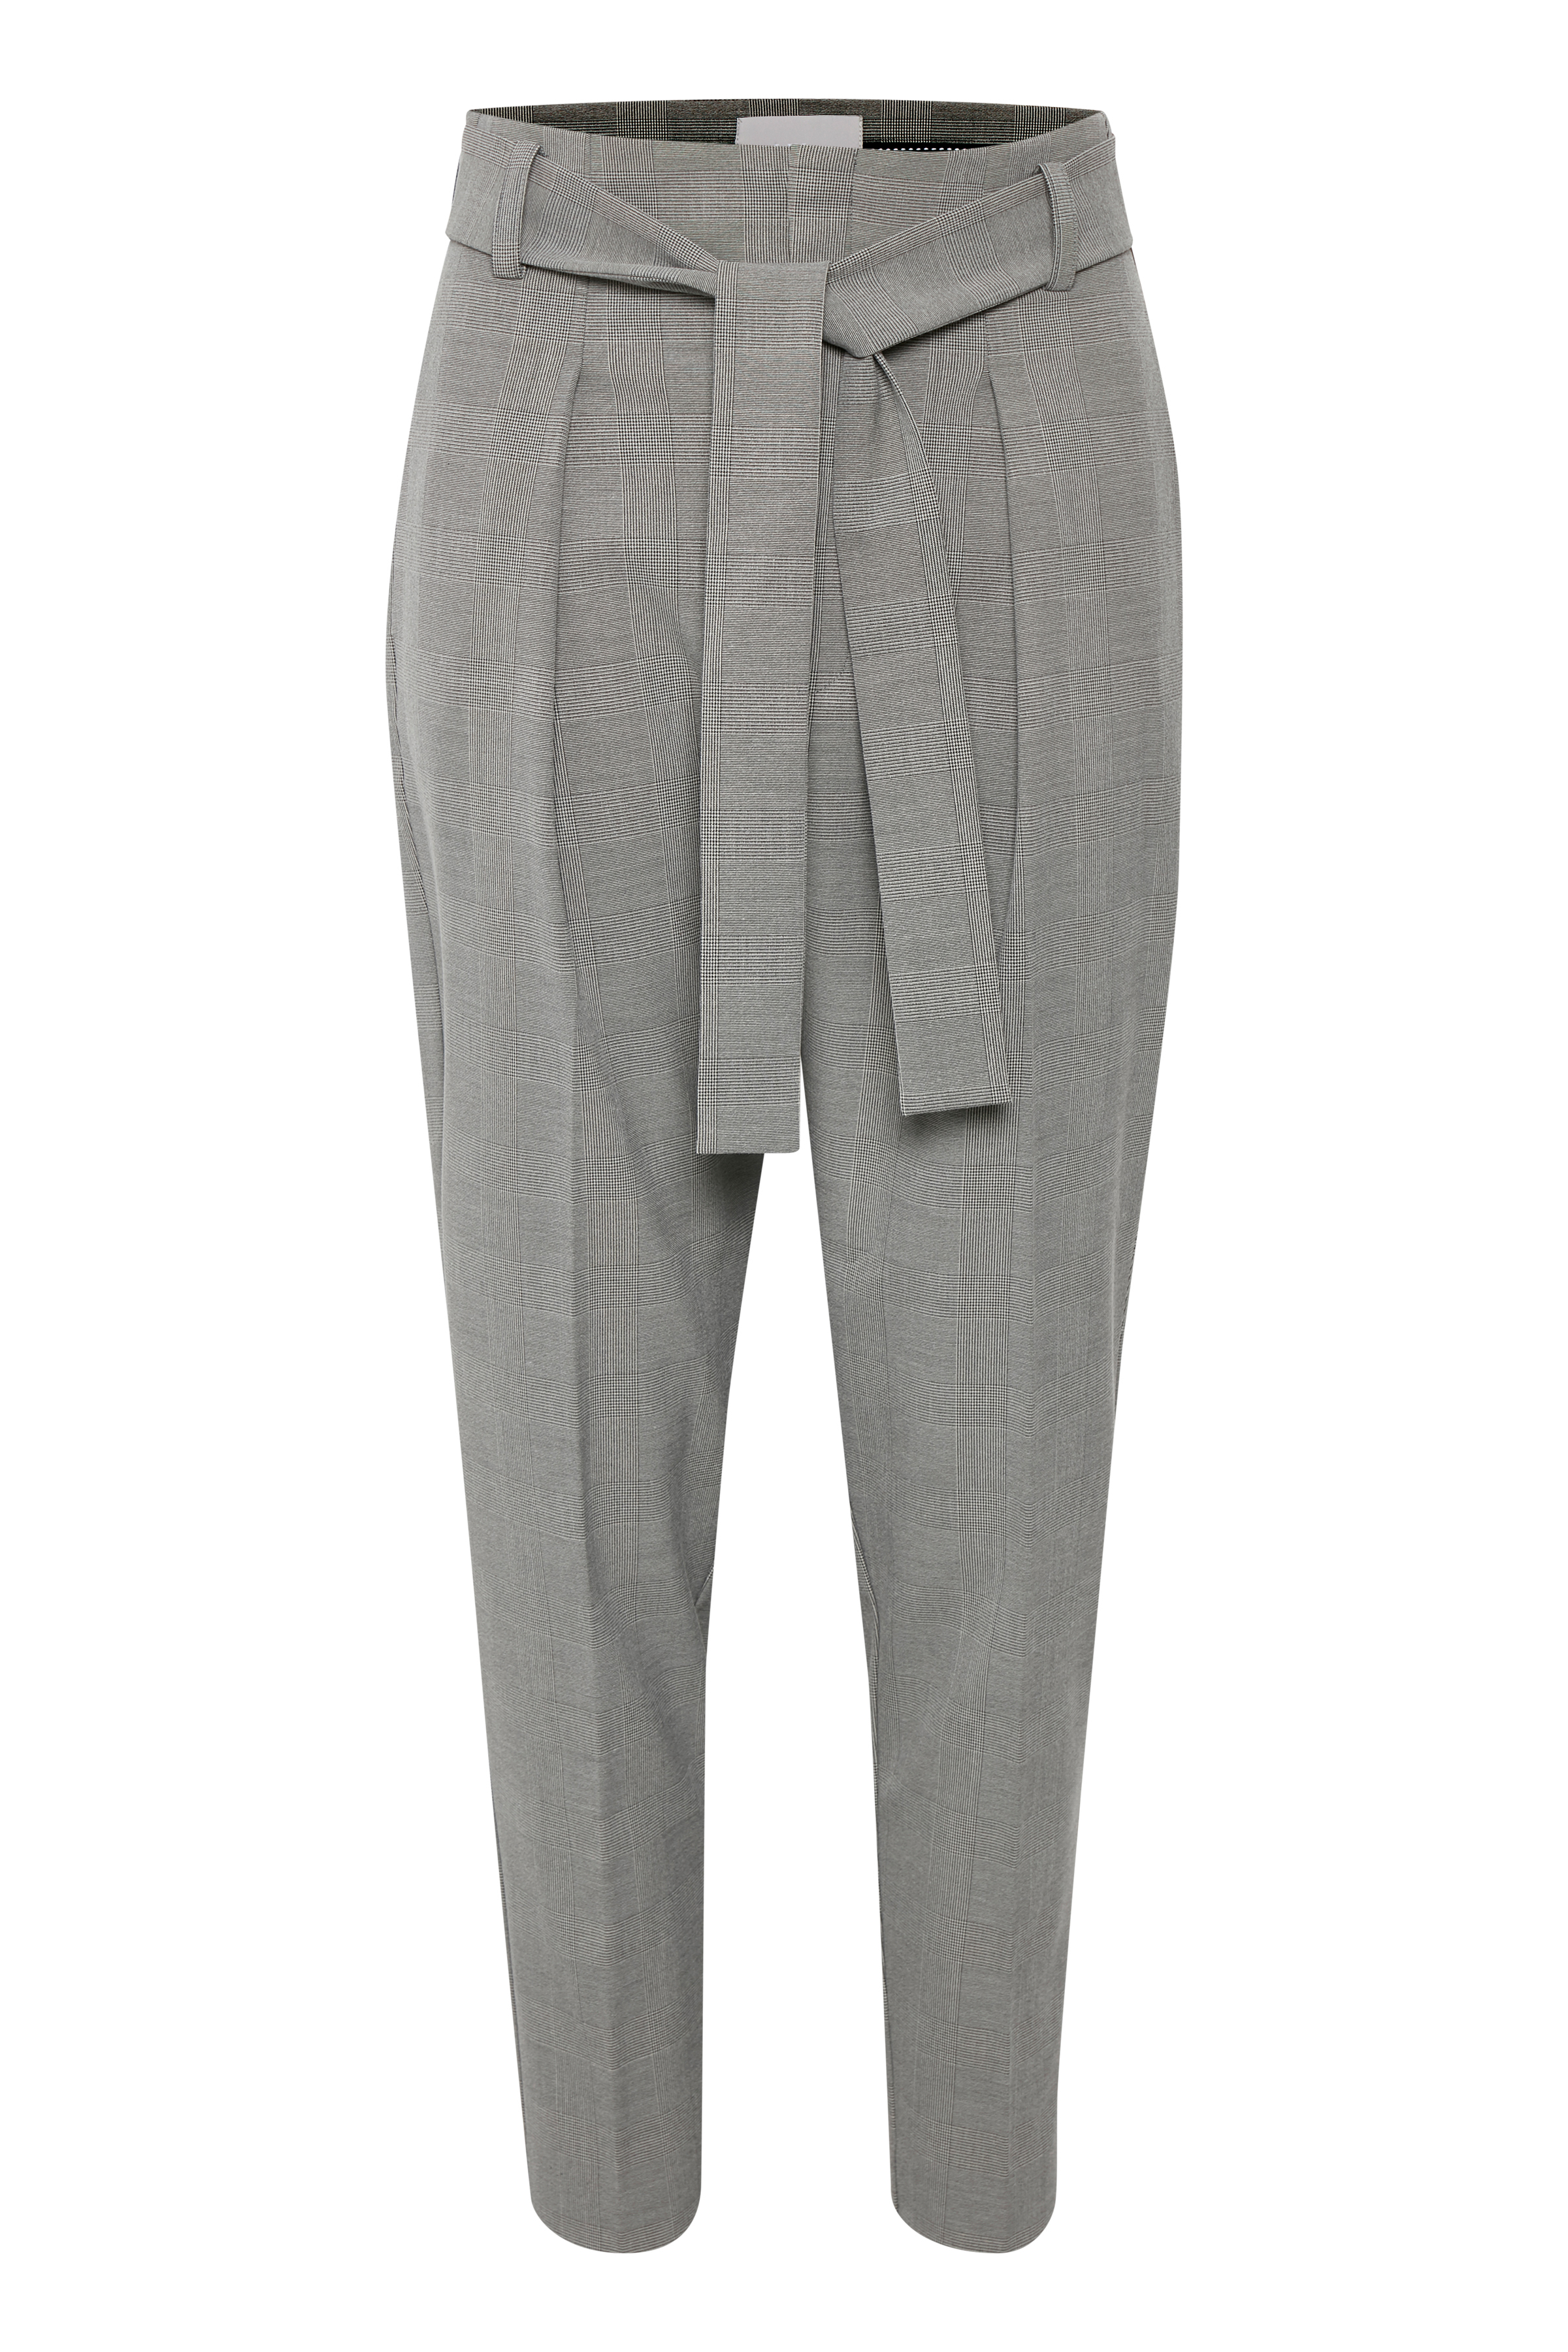 Black and White Pants Suiting – Køb Black and White Pants Suiting fra str. 34-40 her